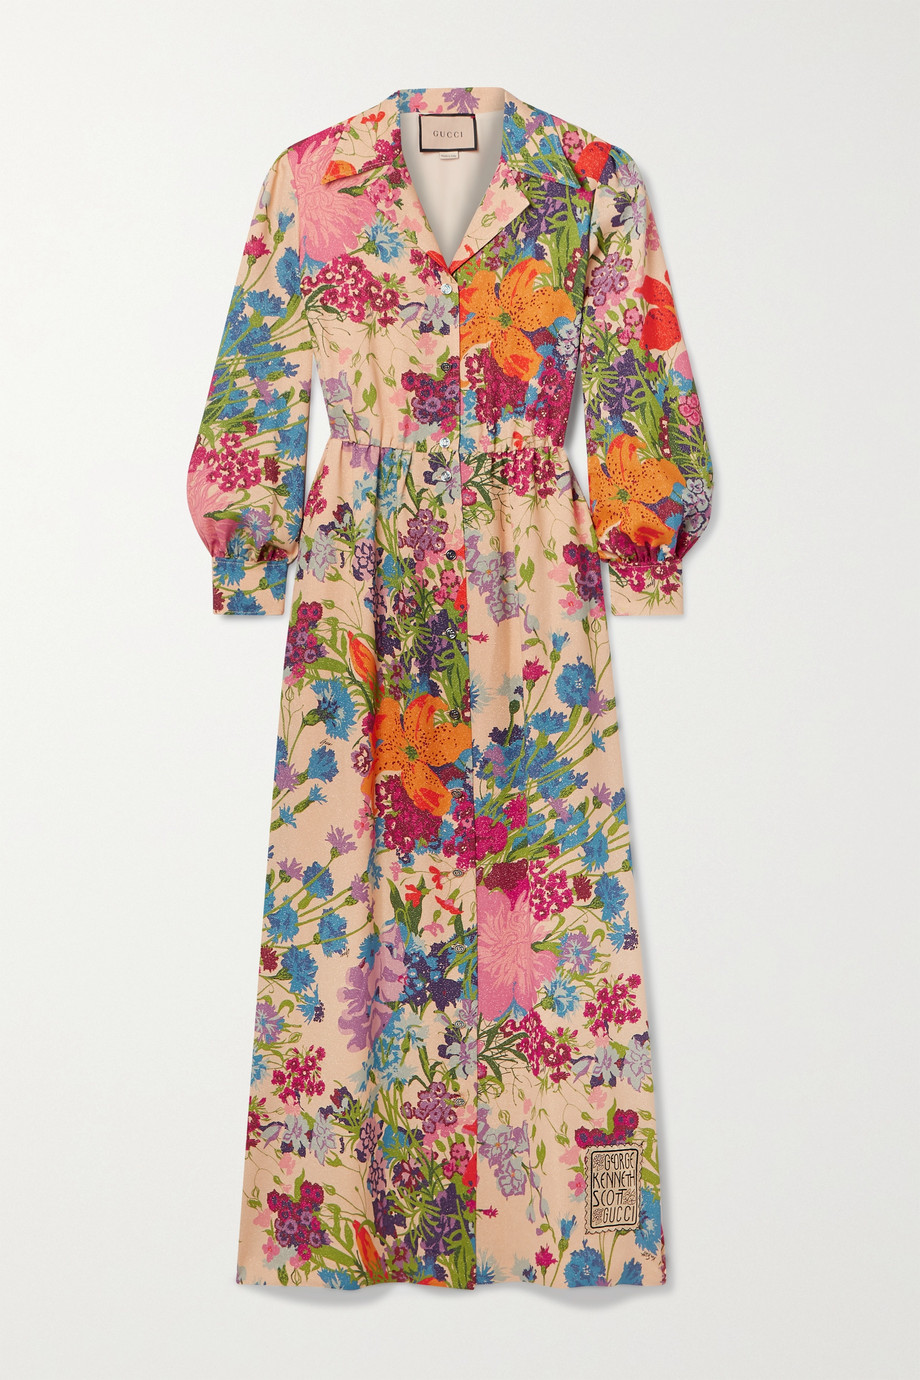 Gucci + Ken Scott appliquéd floral-print metallic georgette shirt dress